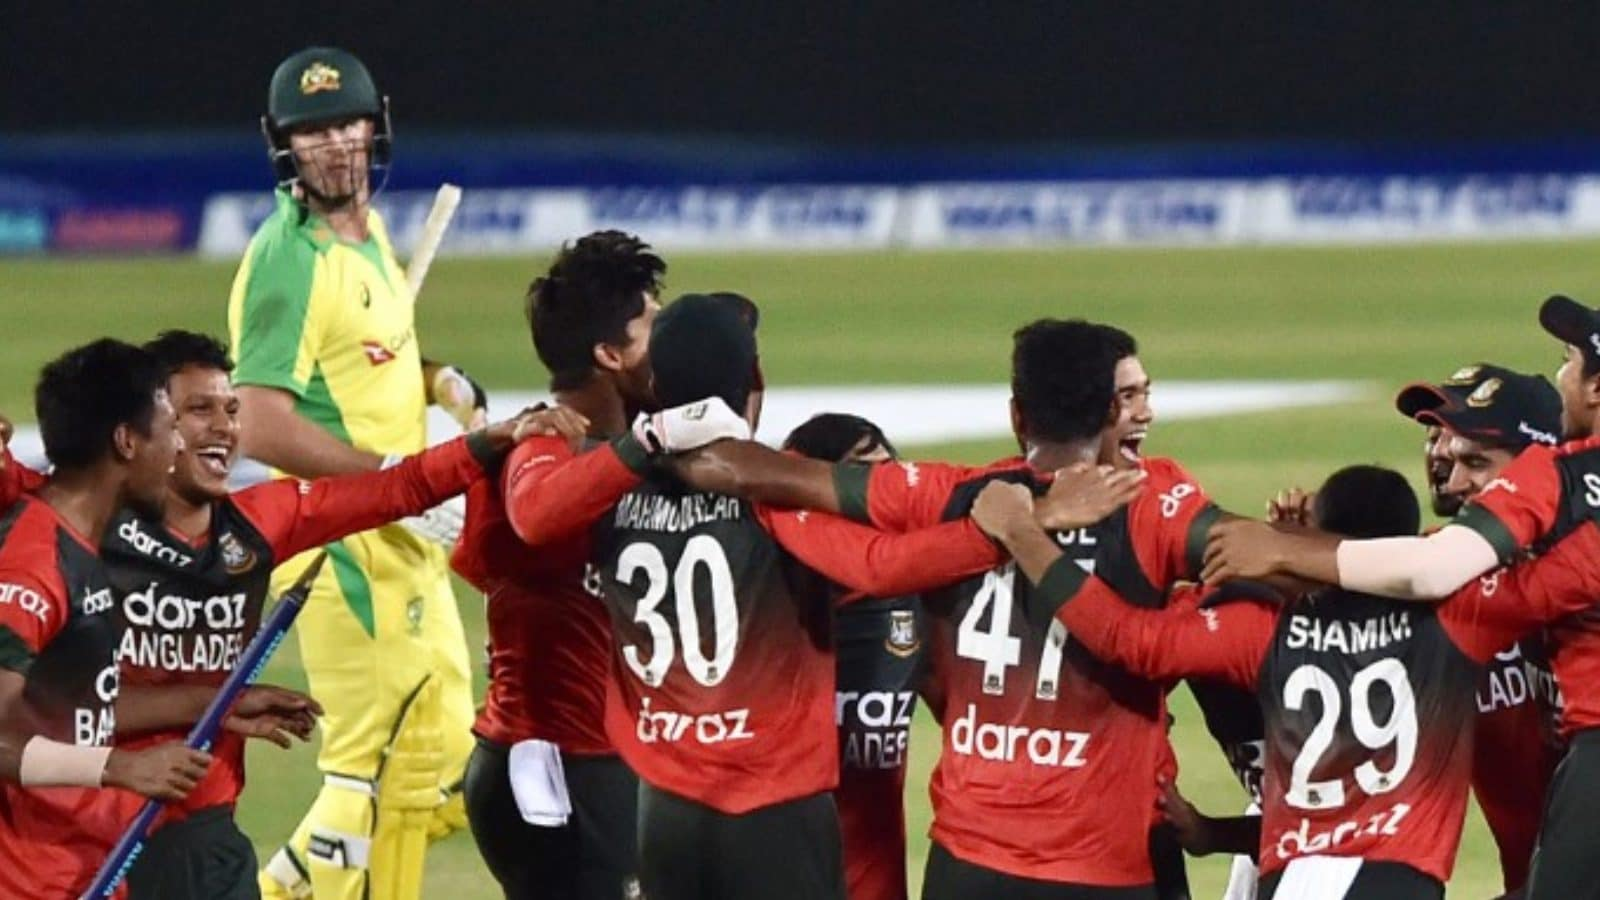 Bangladesh Create History With Series Win in Mirpur